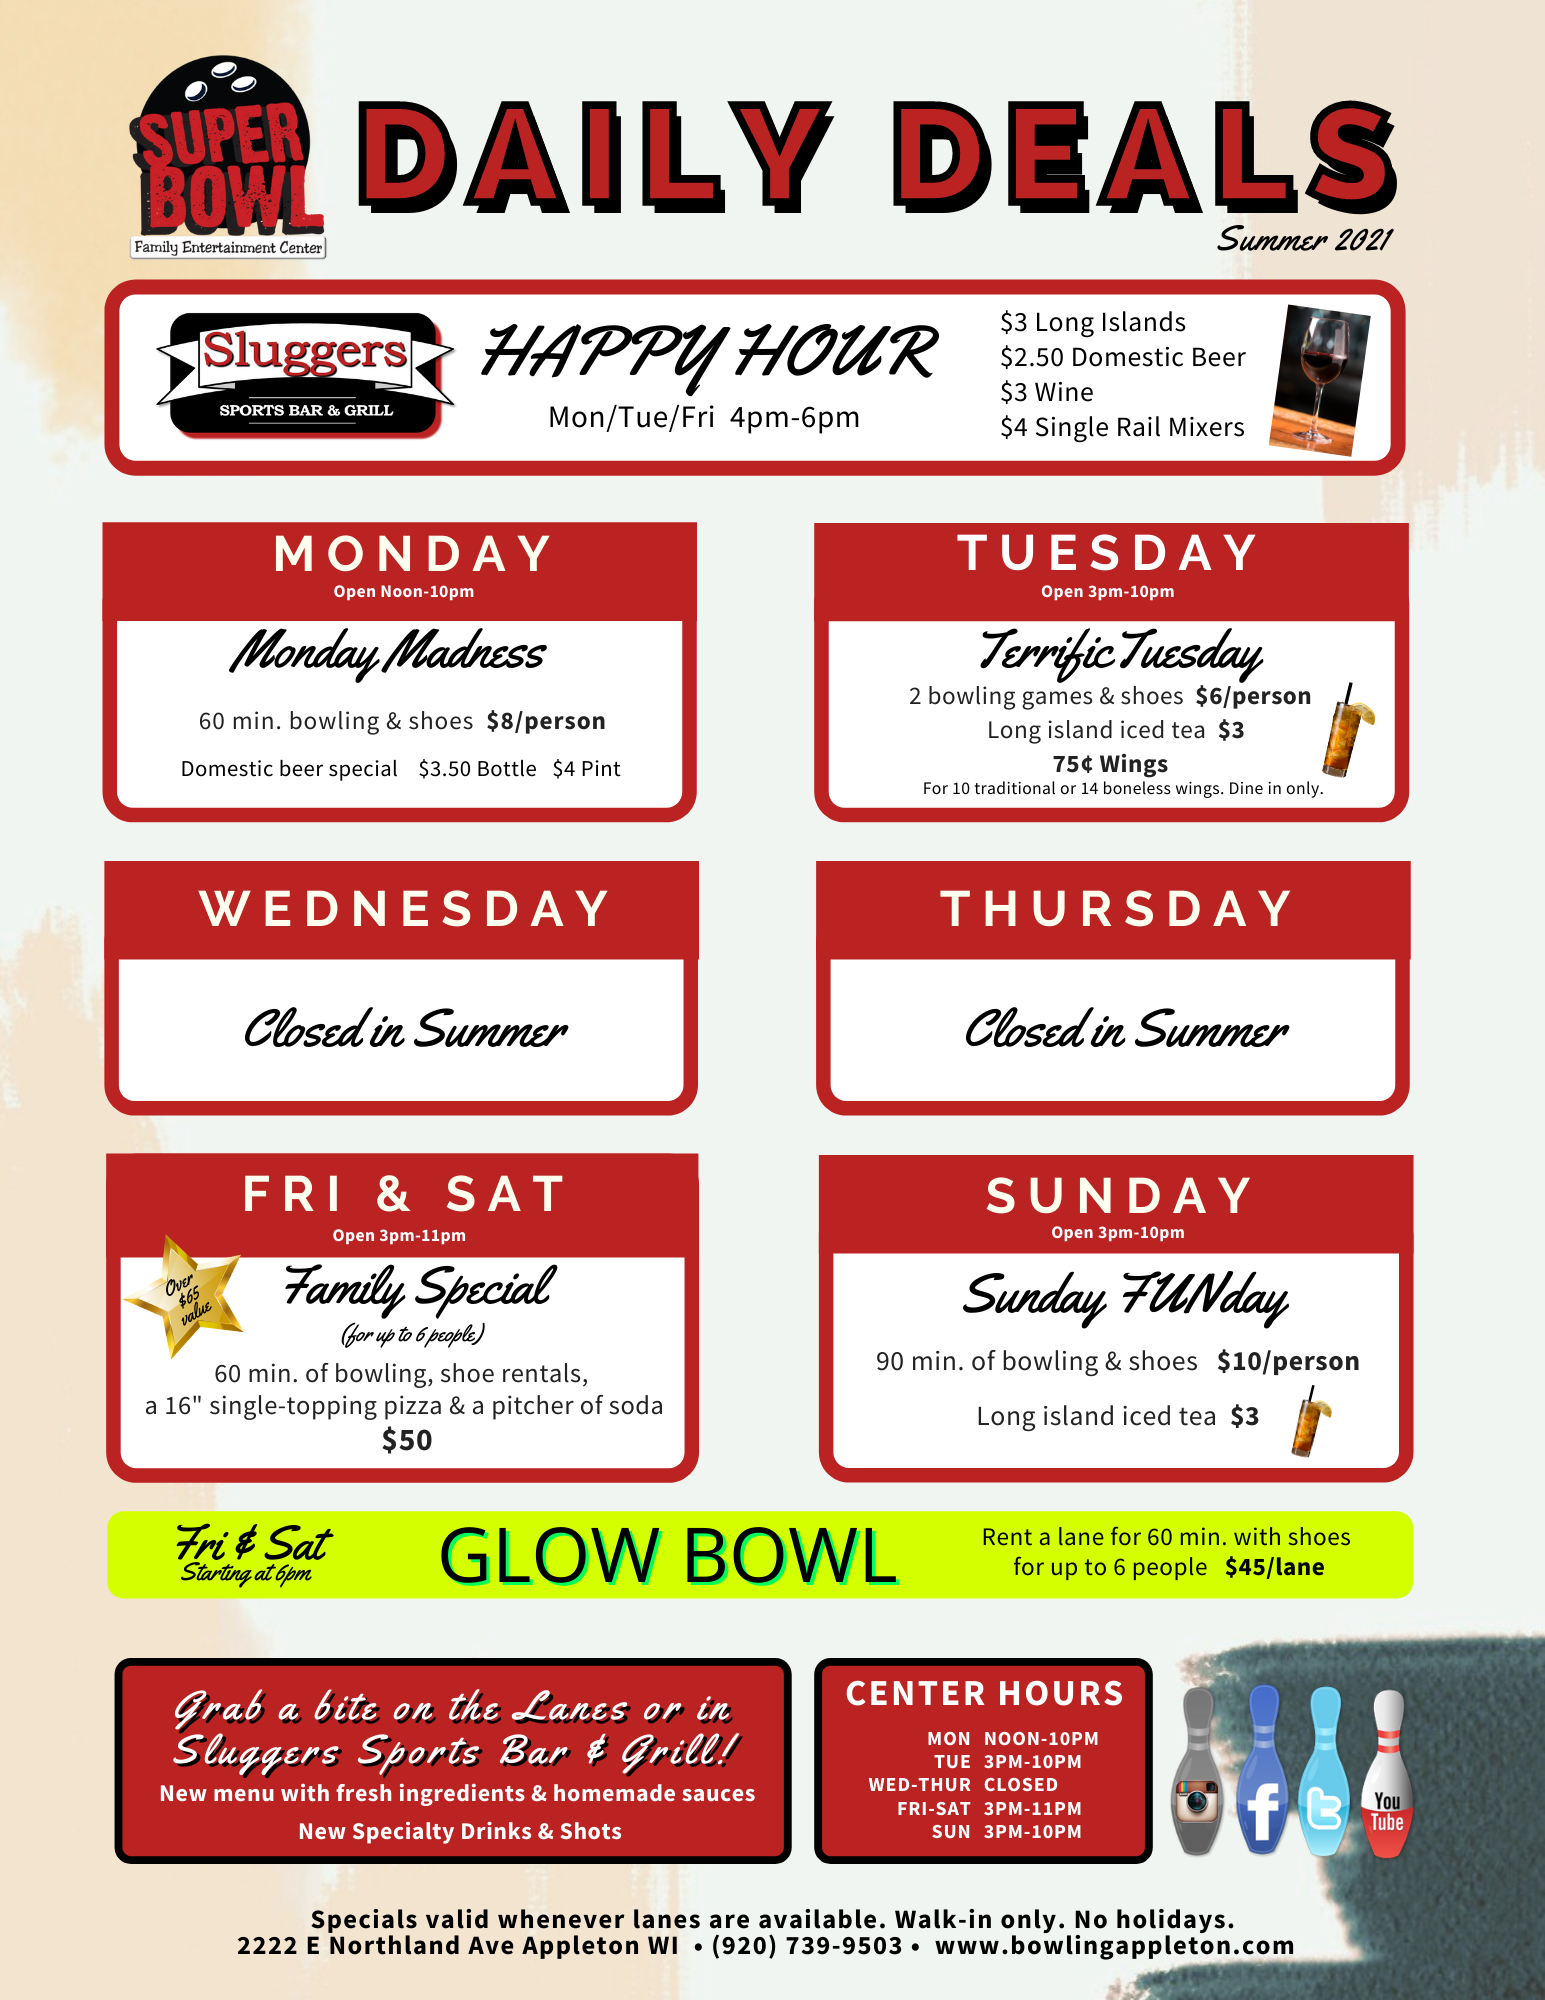 Super Bowl's Walk in Daily Deals | Spring/Summer 2021 Daily Deals | Open Bowling Deals | Fun things to do with Family | Appleton, WI